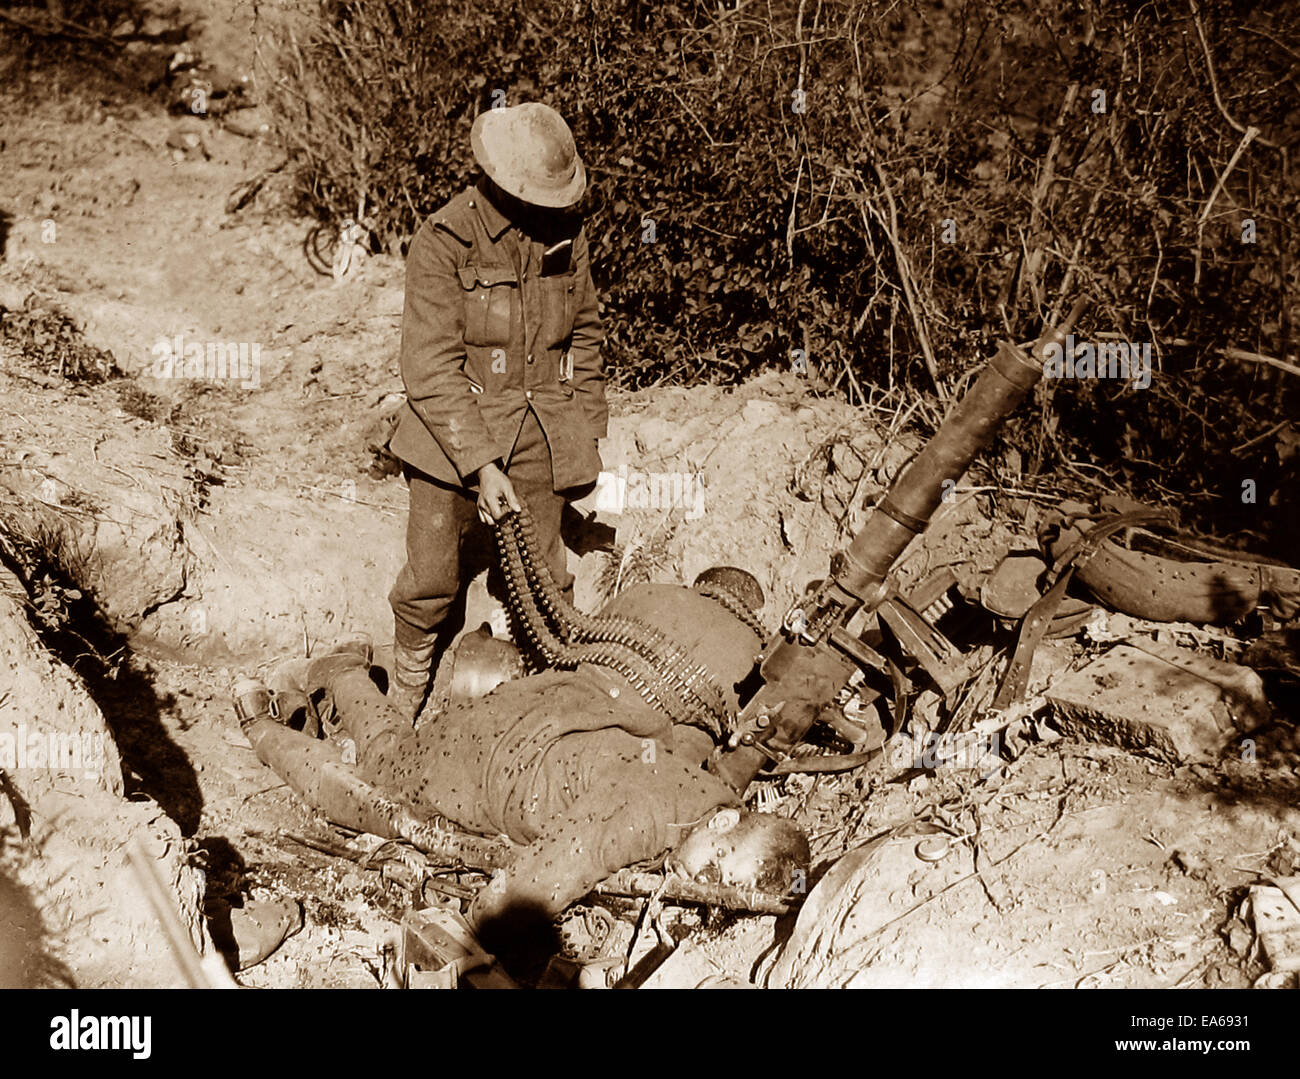 Capture of Meteren France 19th July 1918 WW1 - Stock Image